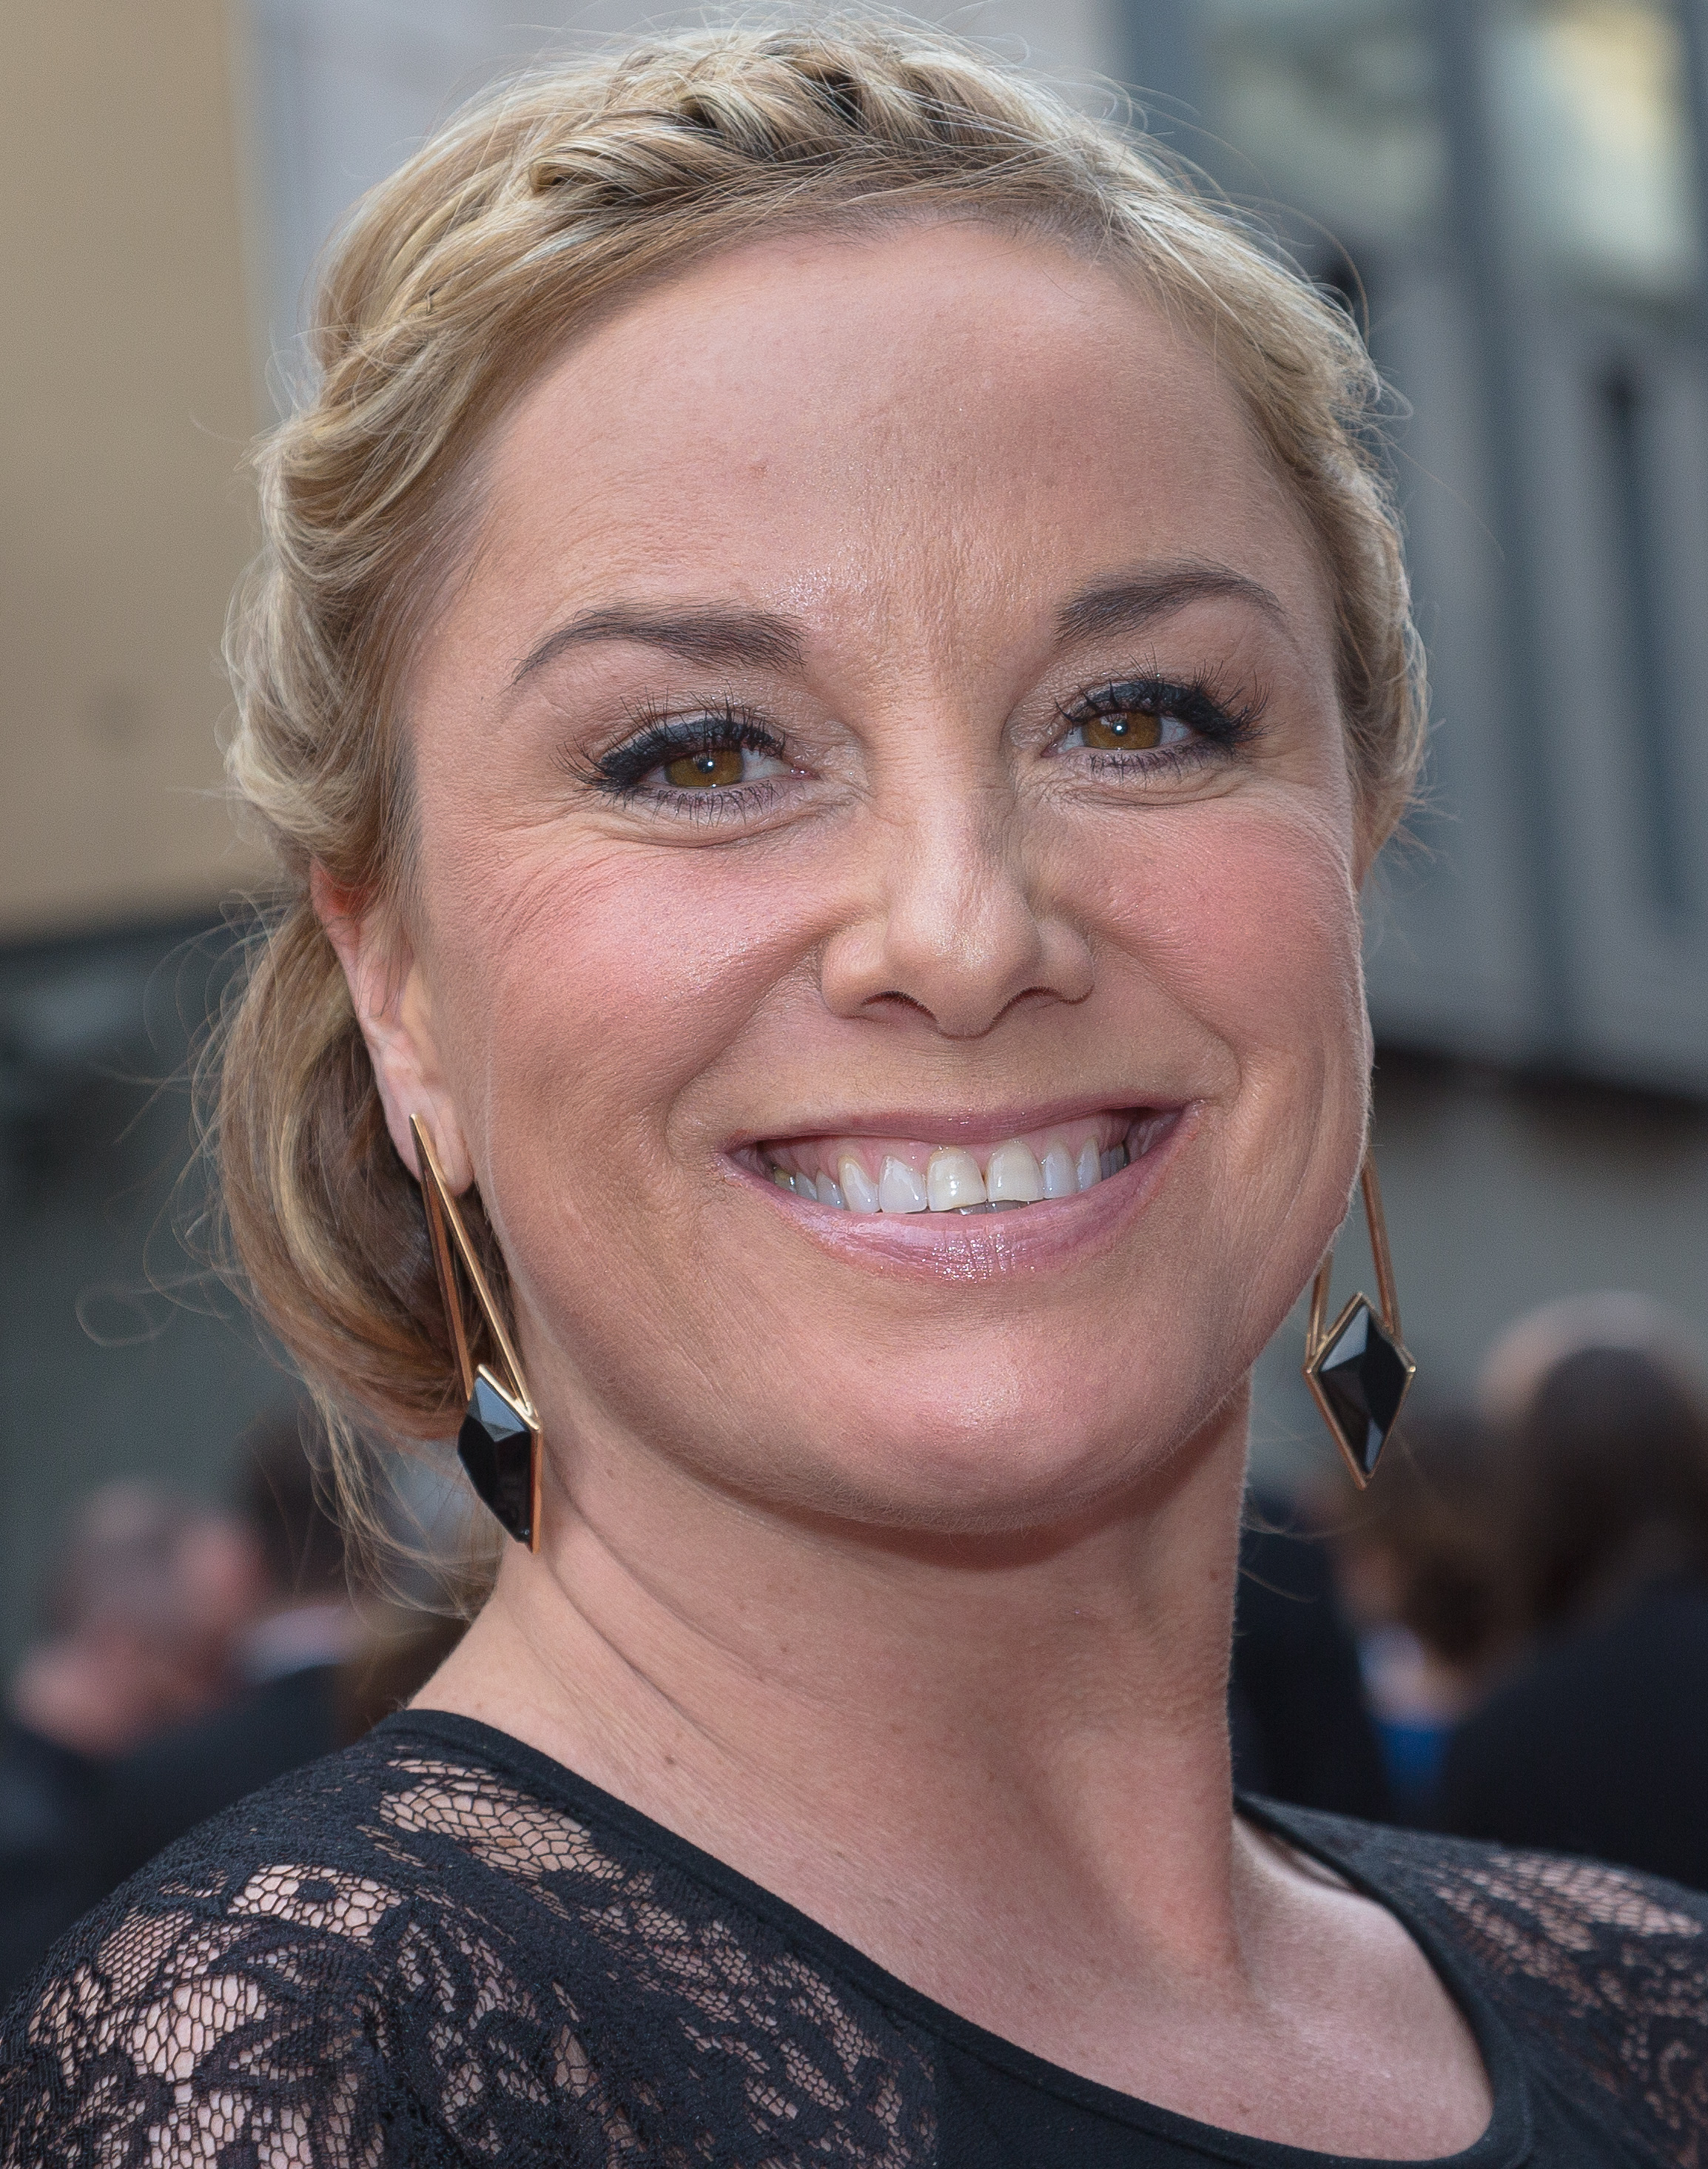 Pics Tamzin Outhwaite naked (18 images), Fappening